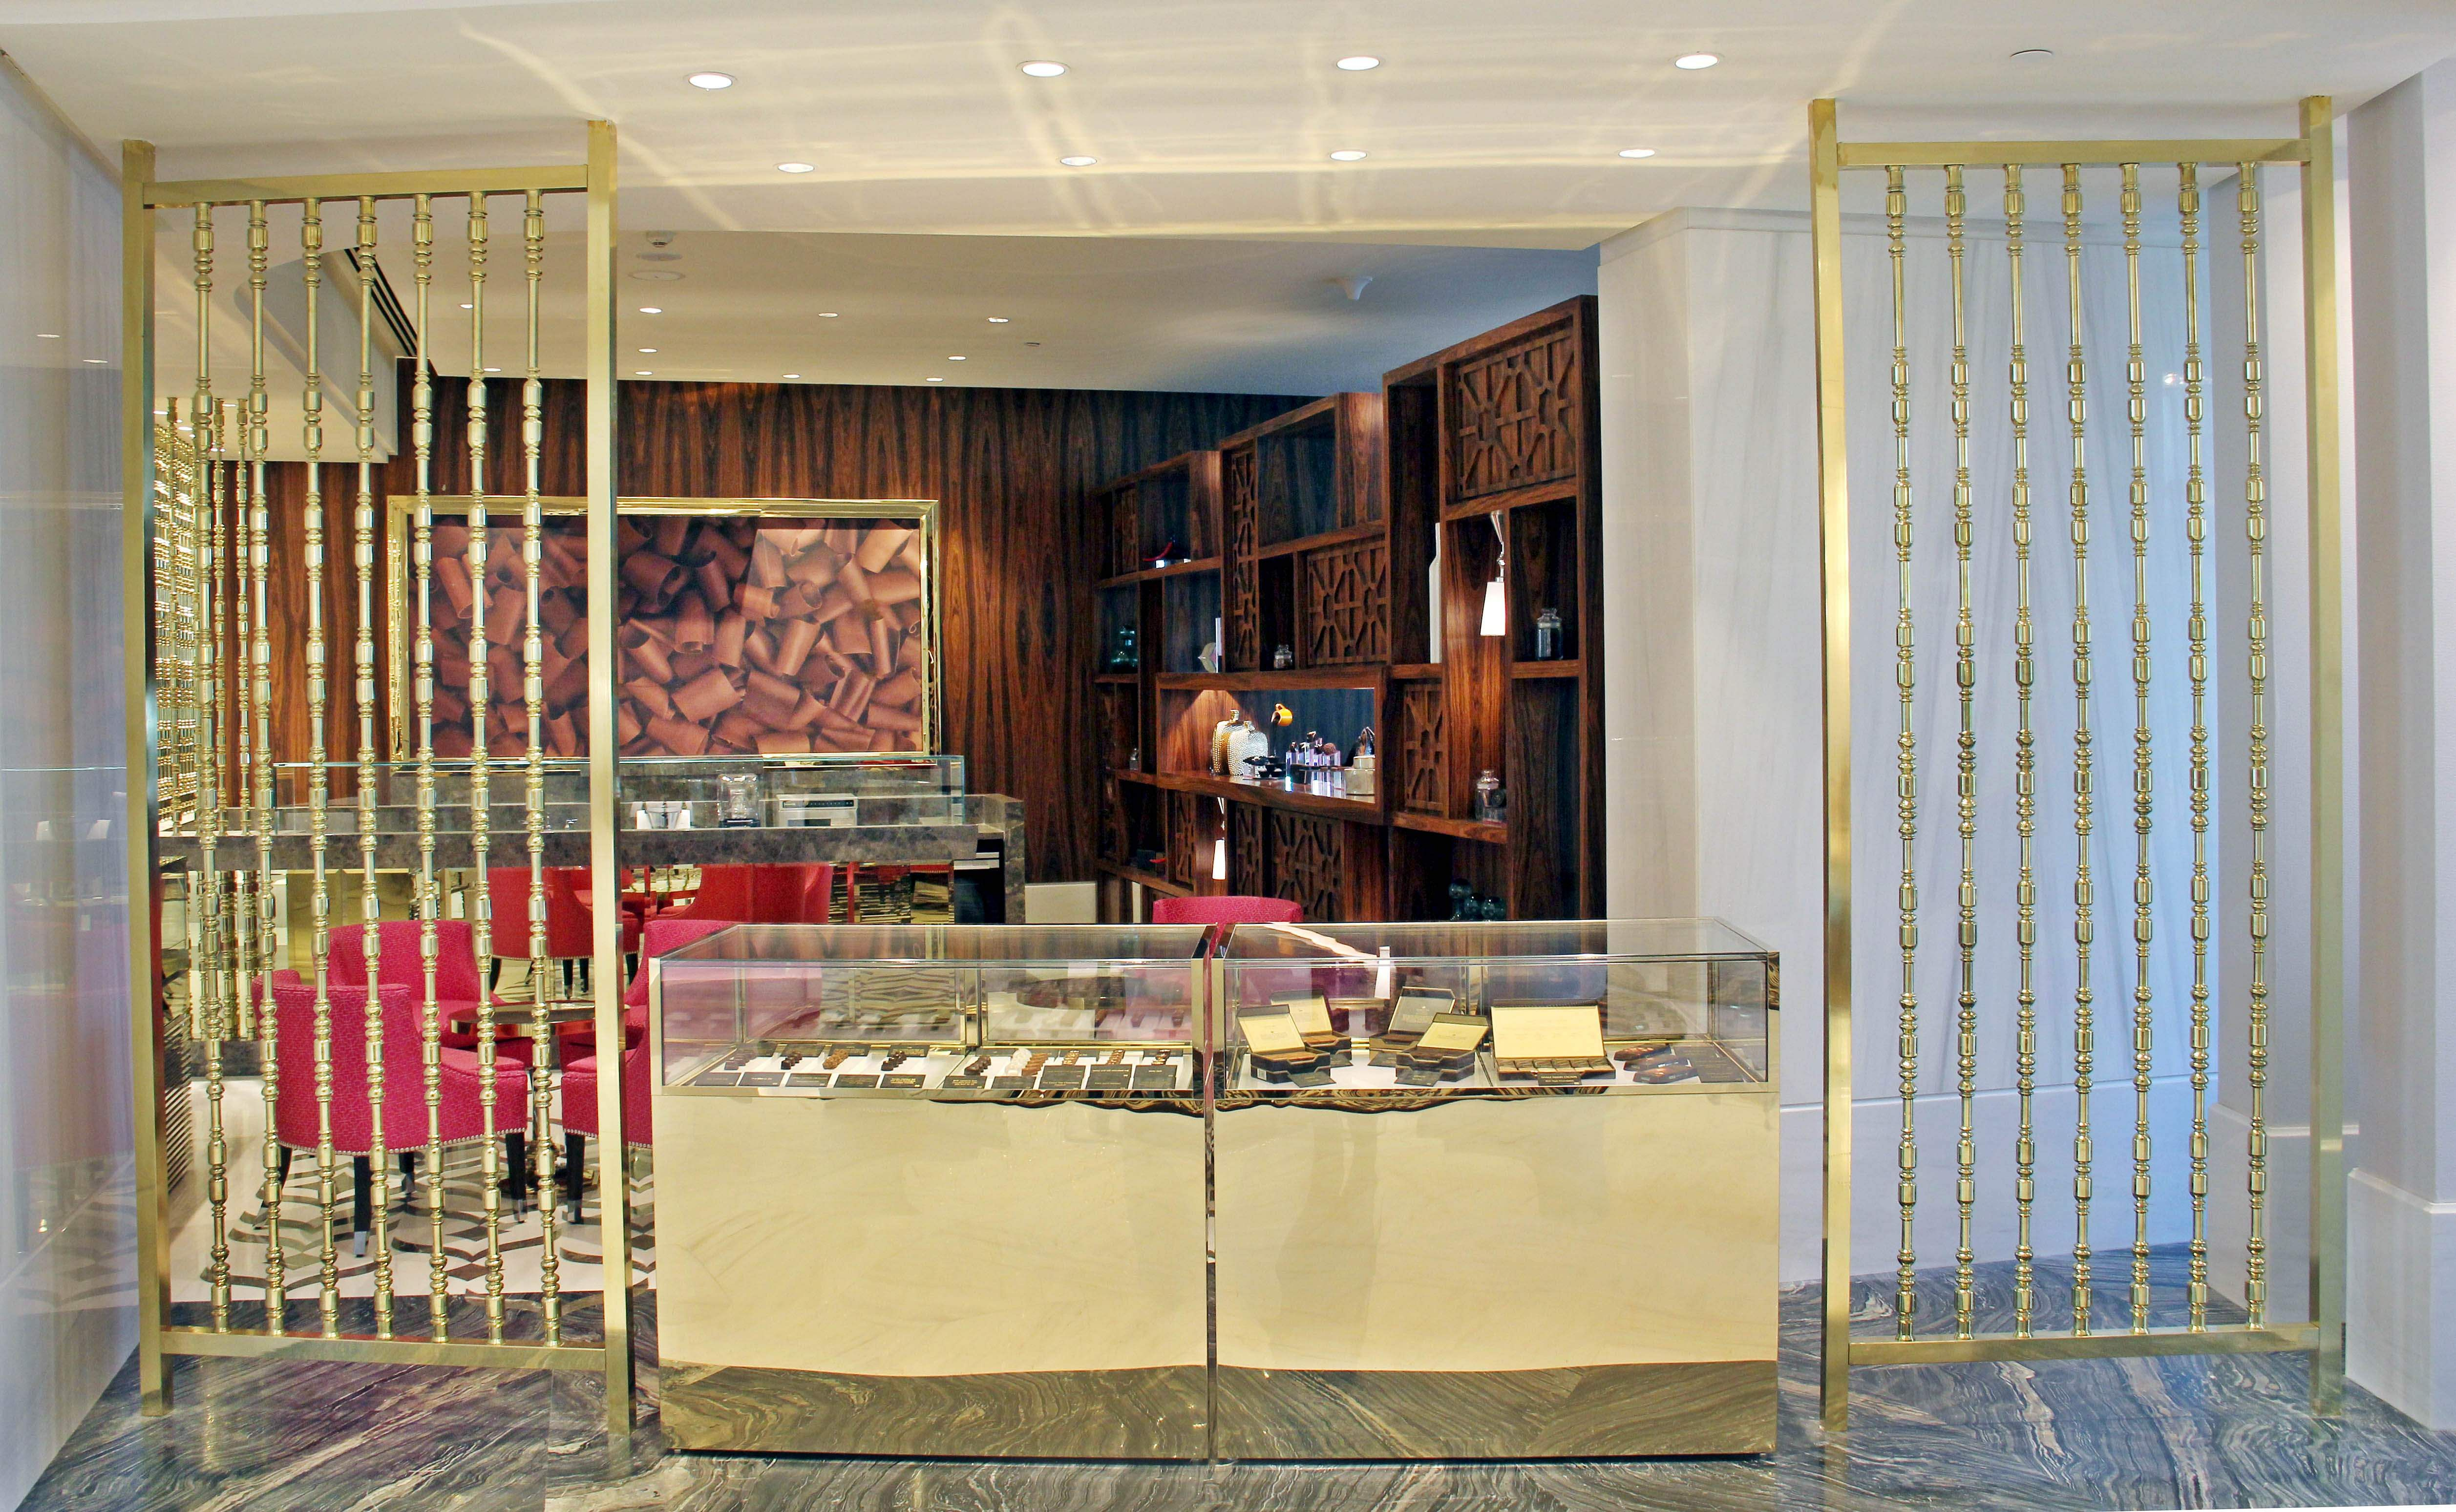 What does ITC Kohenur in Hyderabad promise the luxury